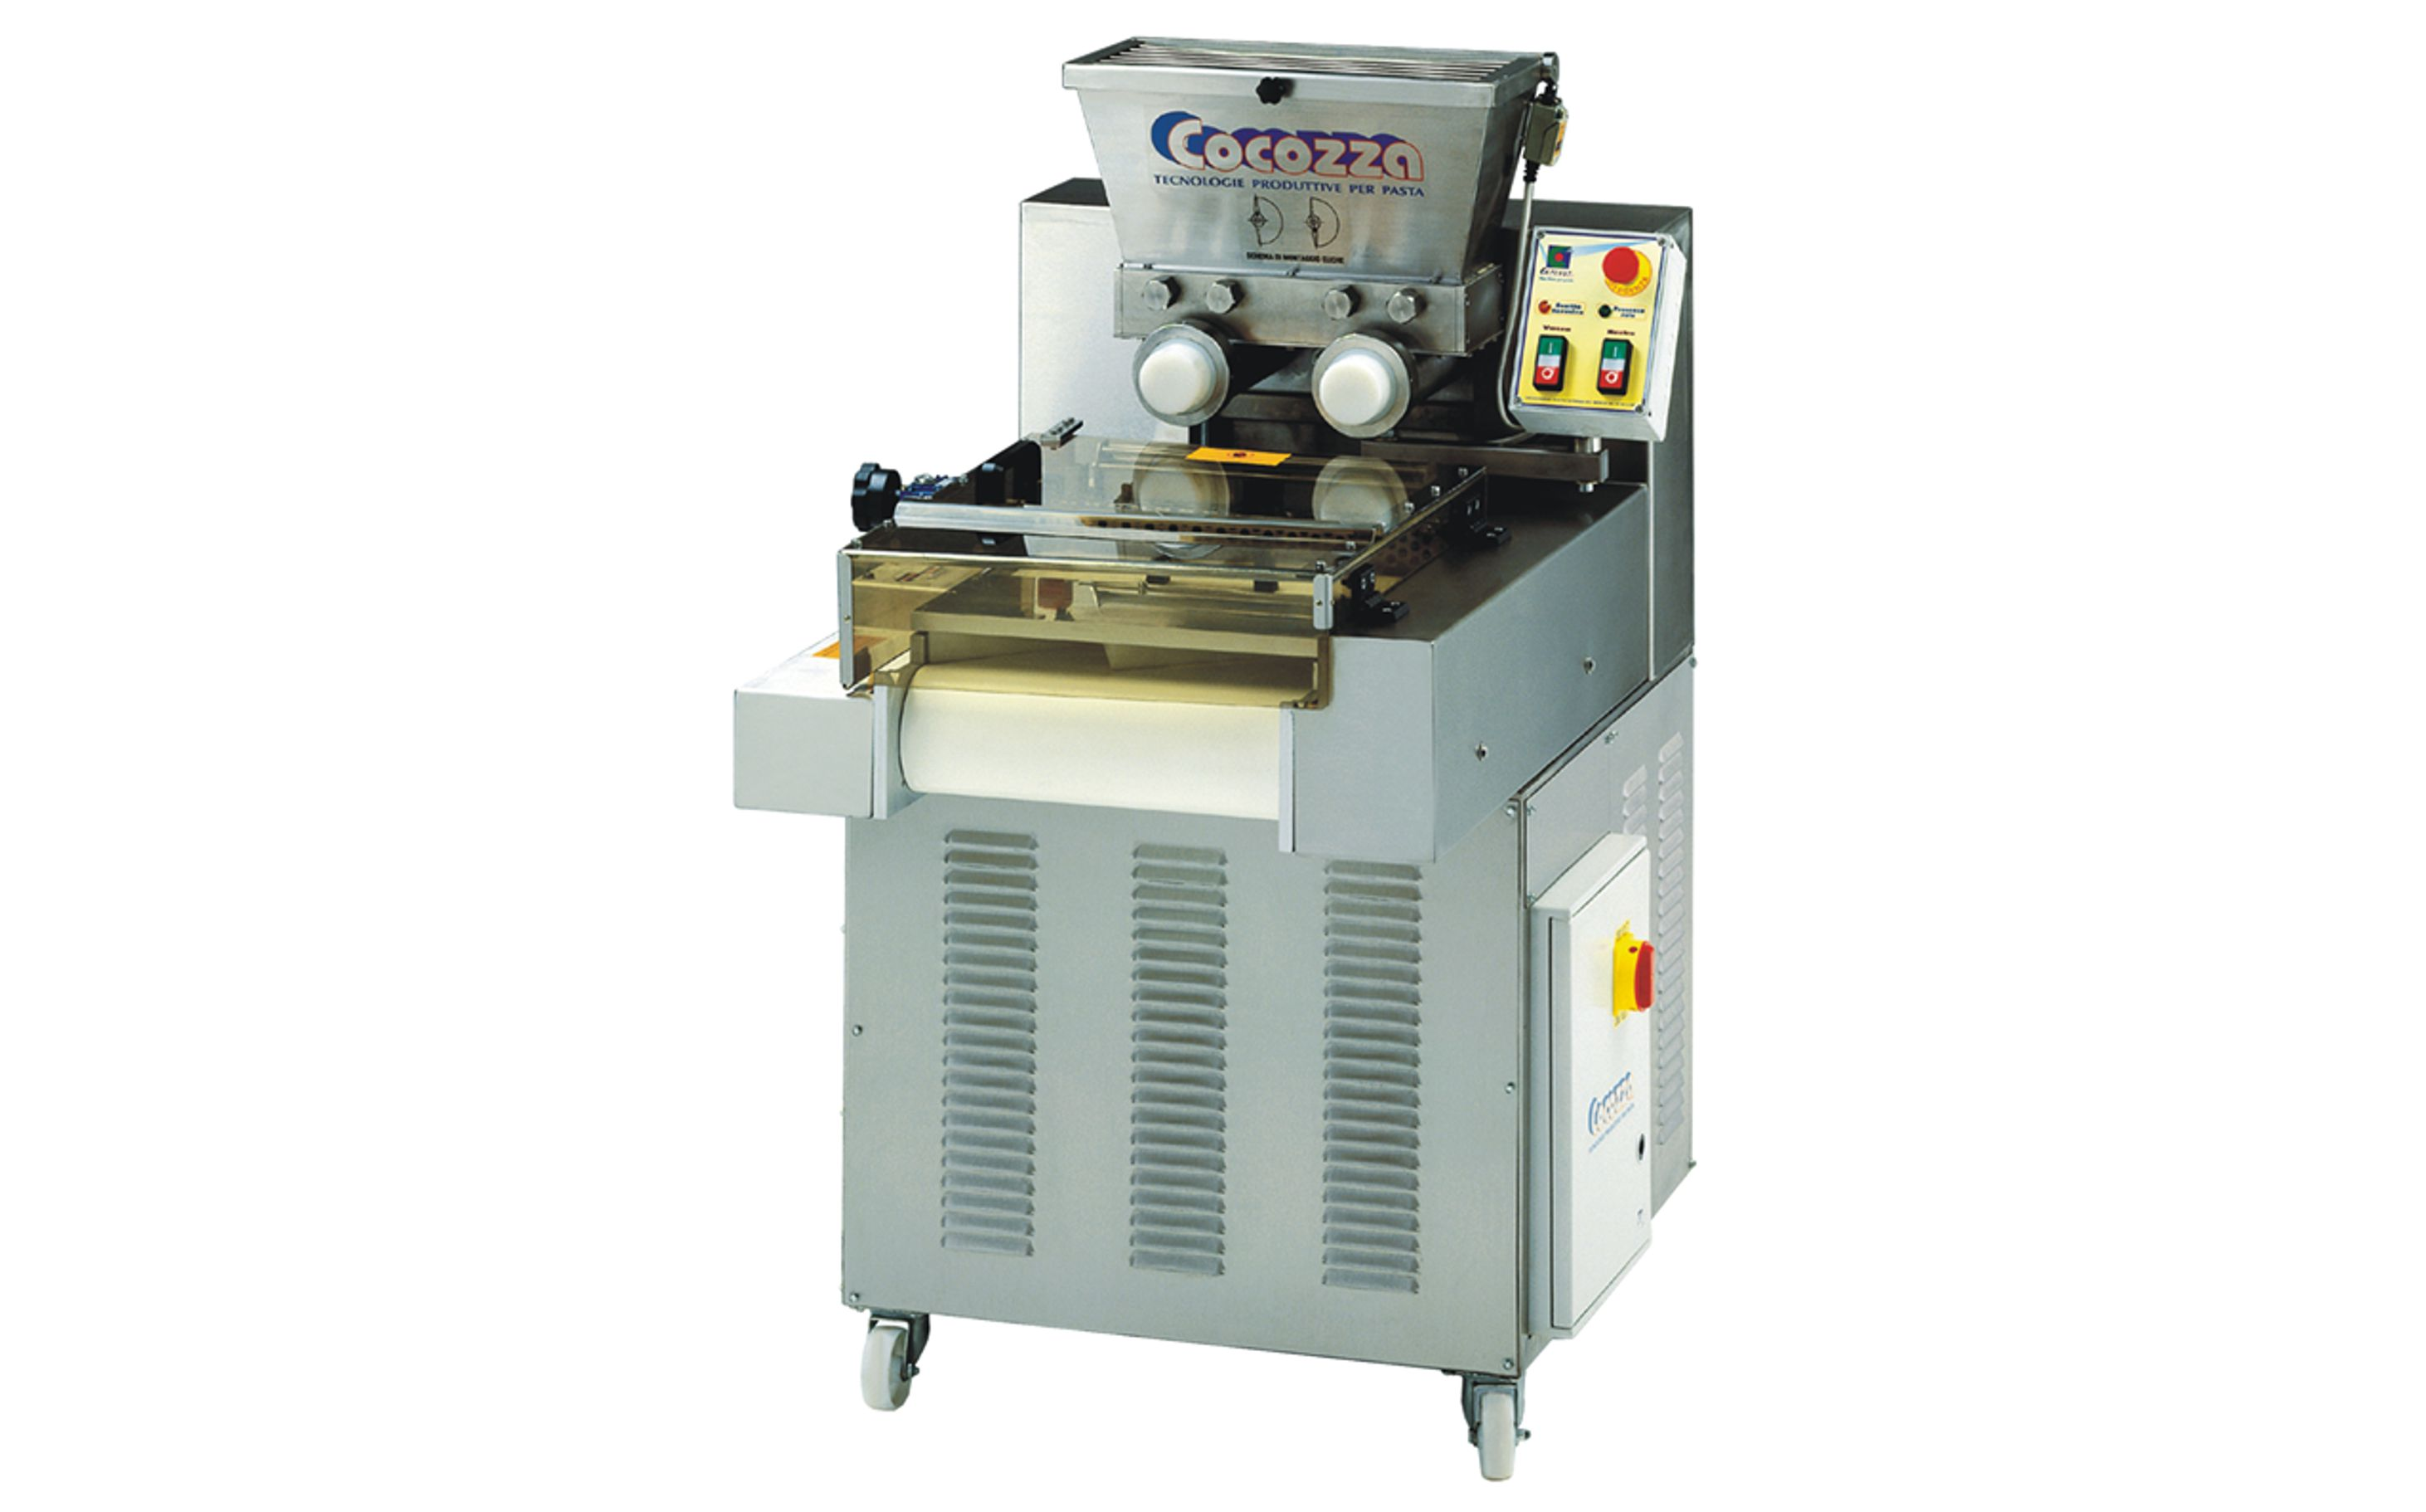 Fusilli machine